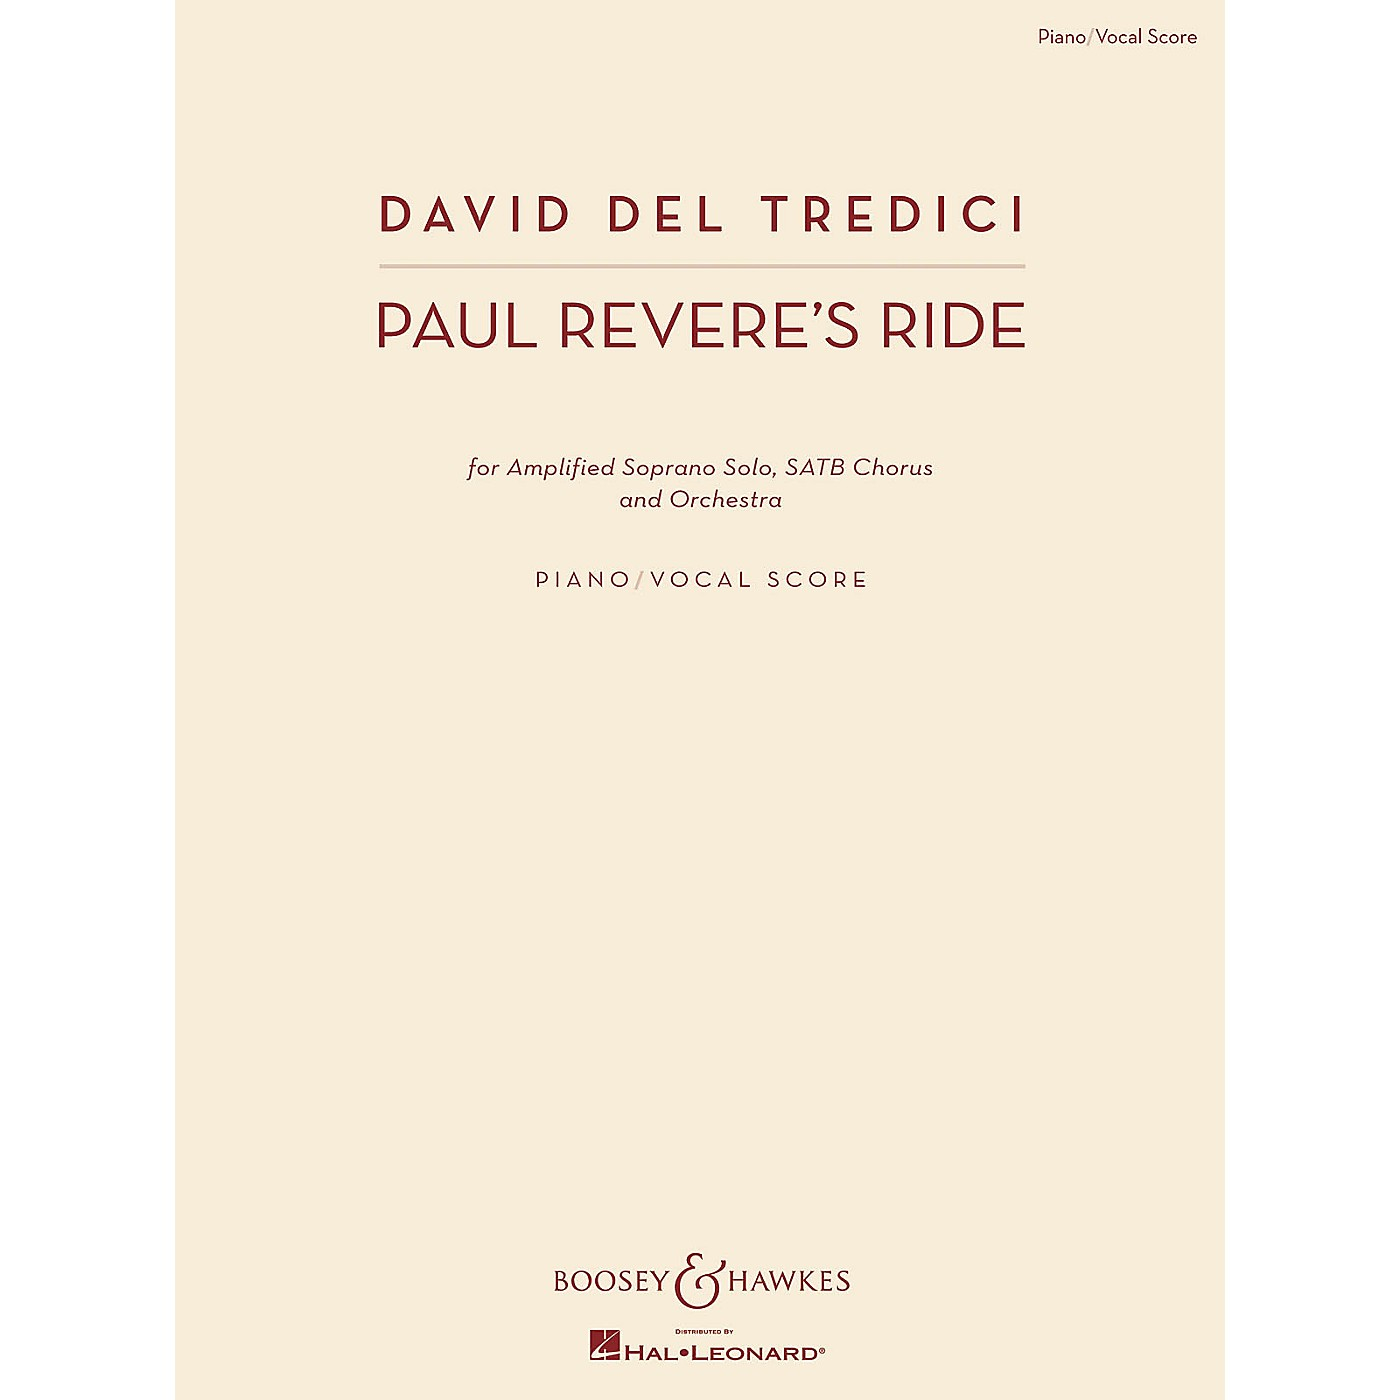 Boosey and Hawkes Paul Revere's Ride (Amplified Soprano Solo, SATB Chorus, and Orch) Vocal Score composed by David Del Tredici thumbnail